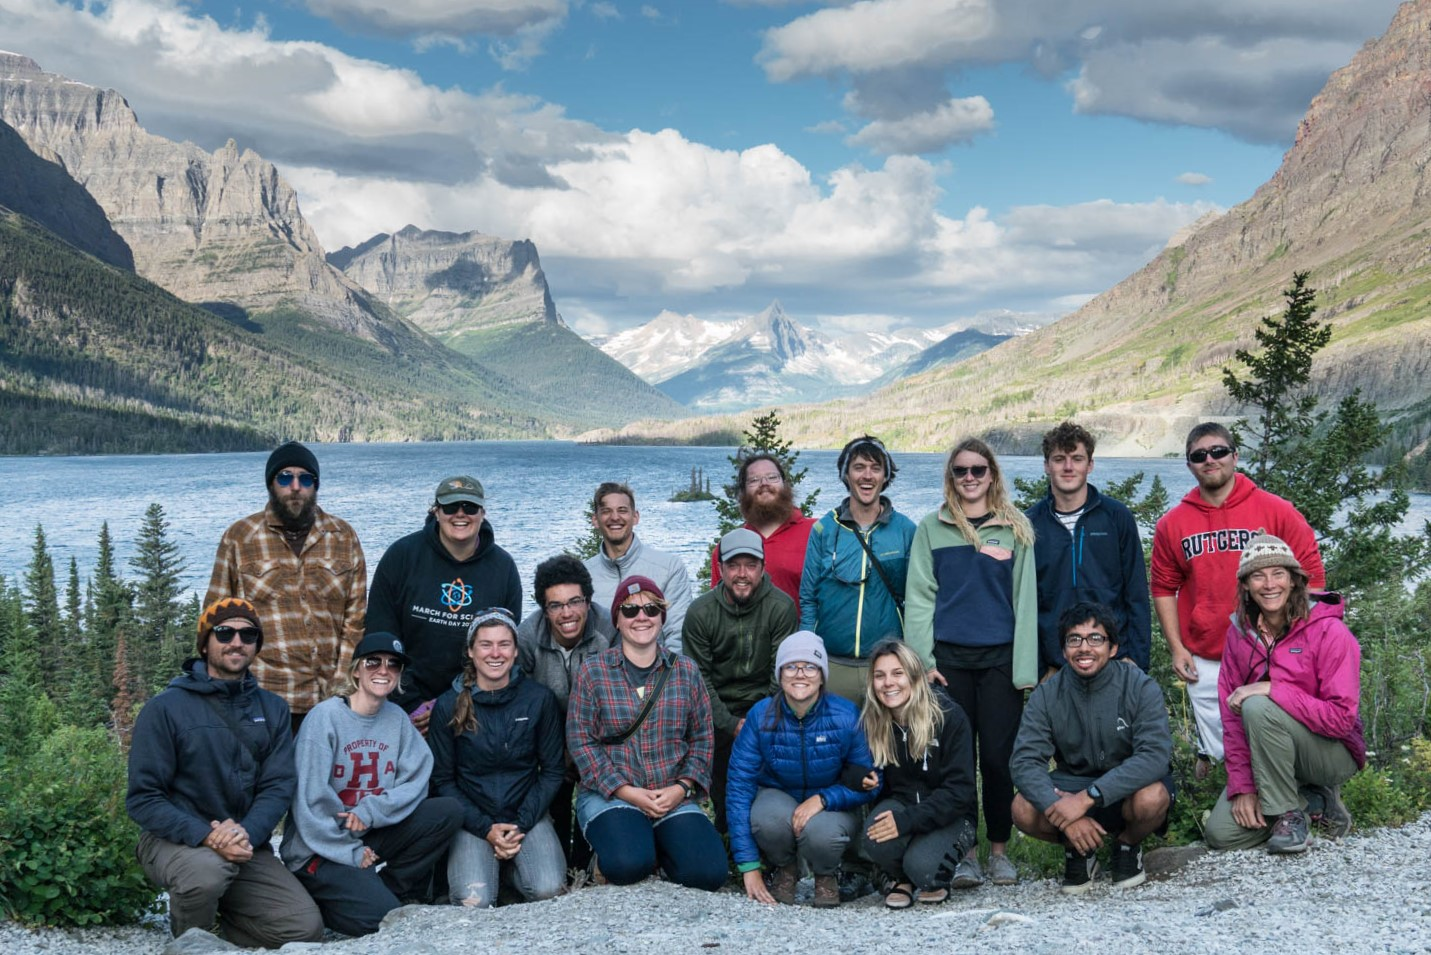 Geology students pose in front of a lake.